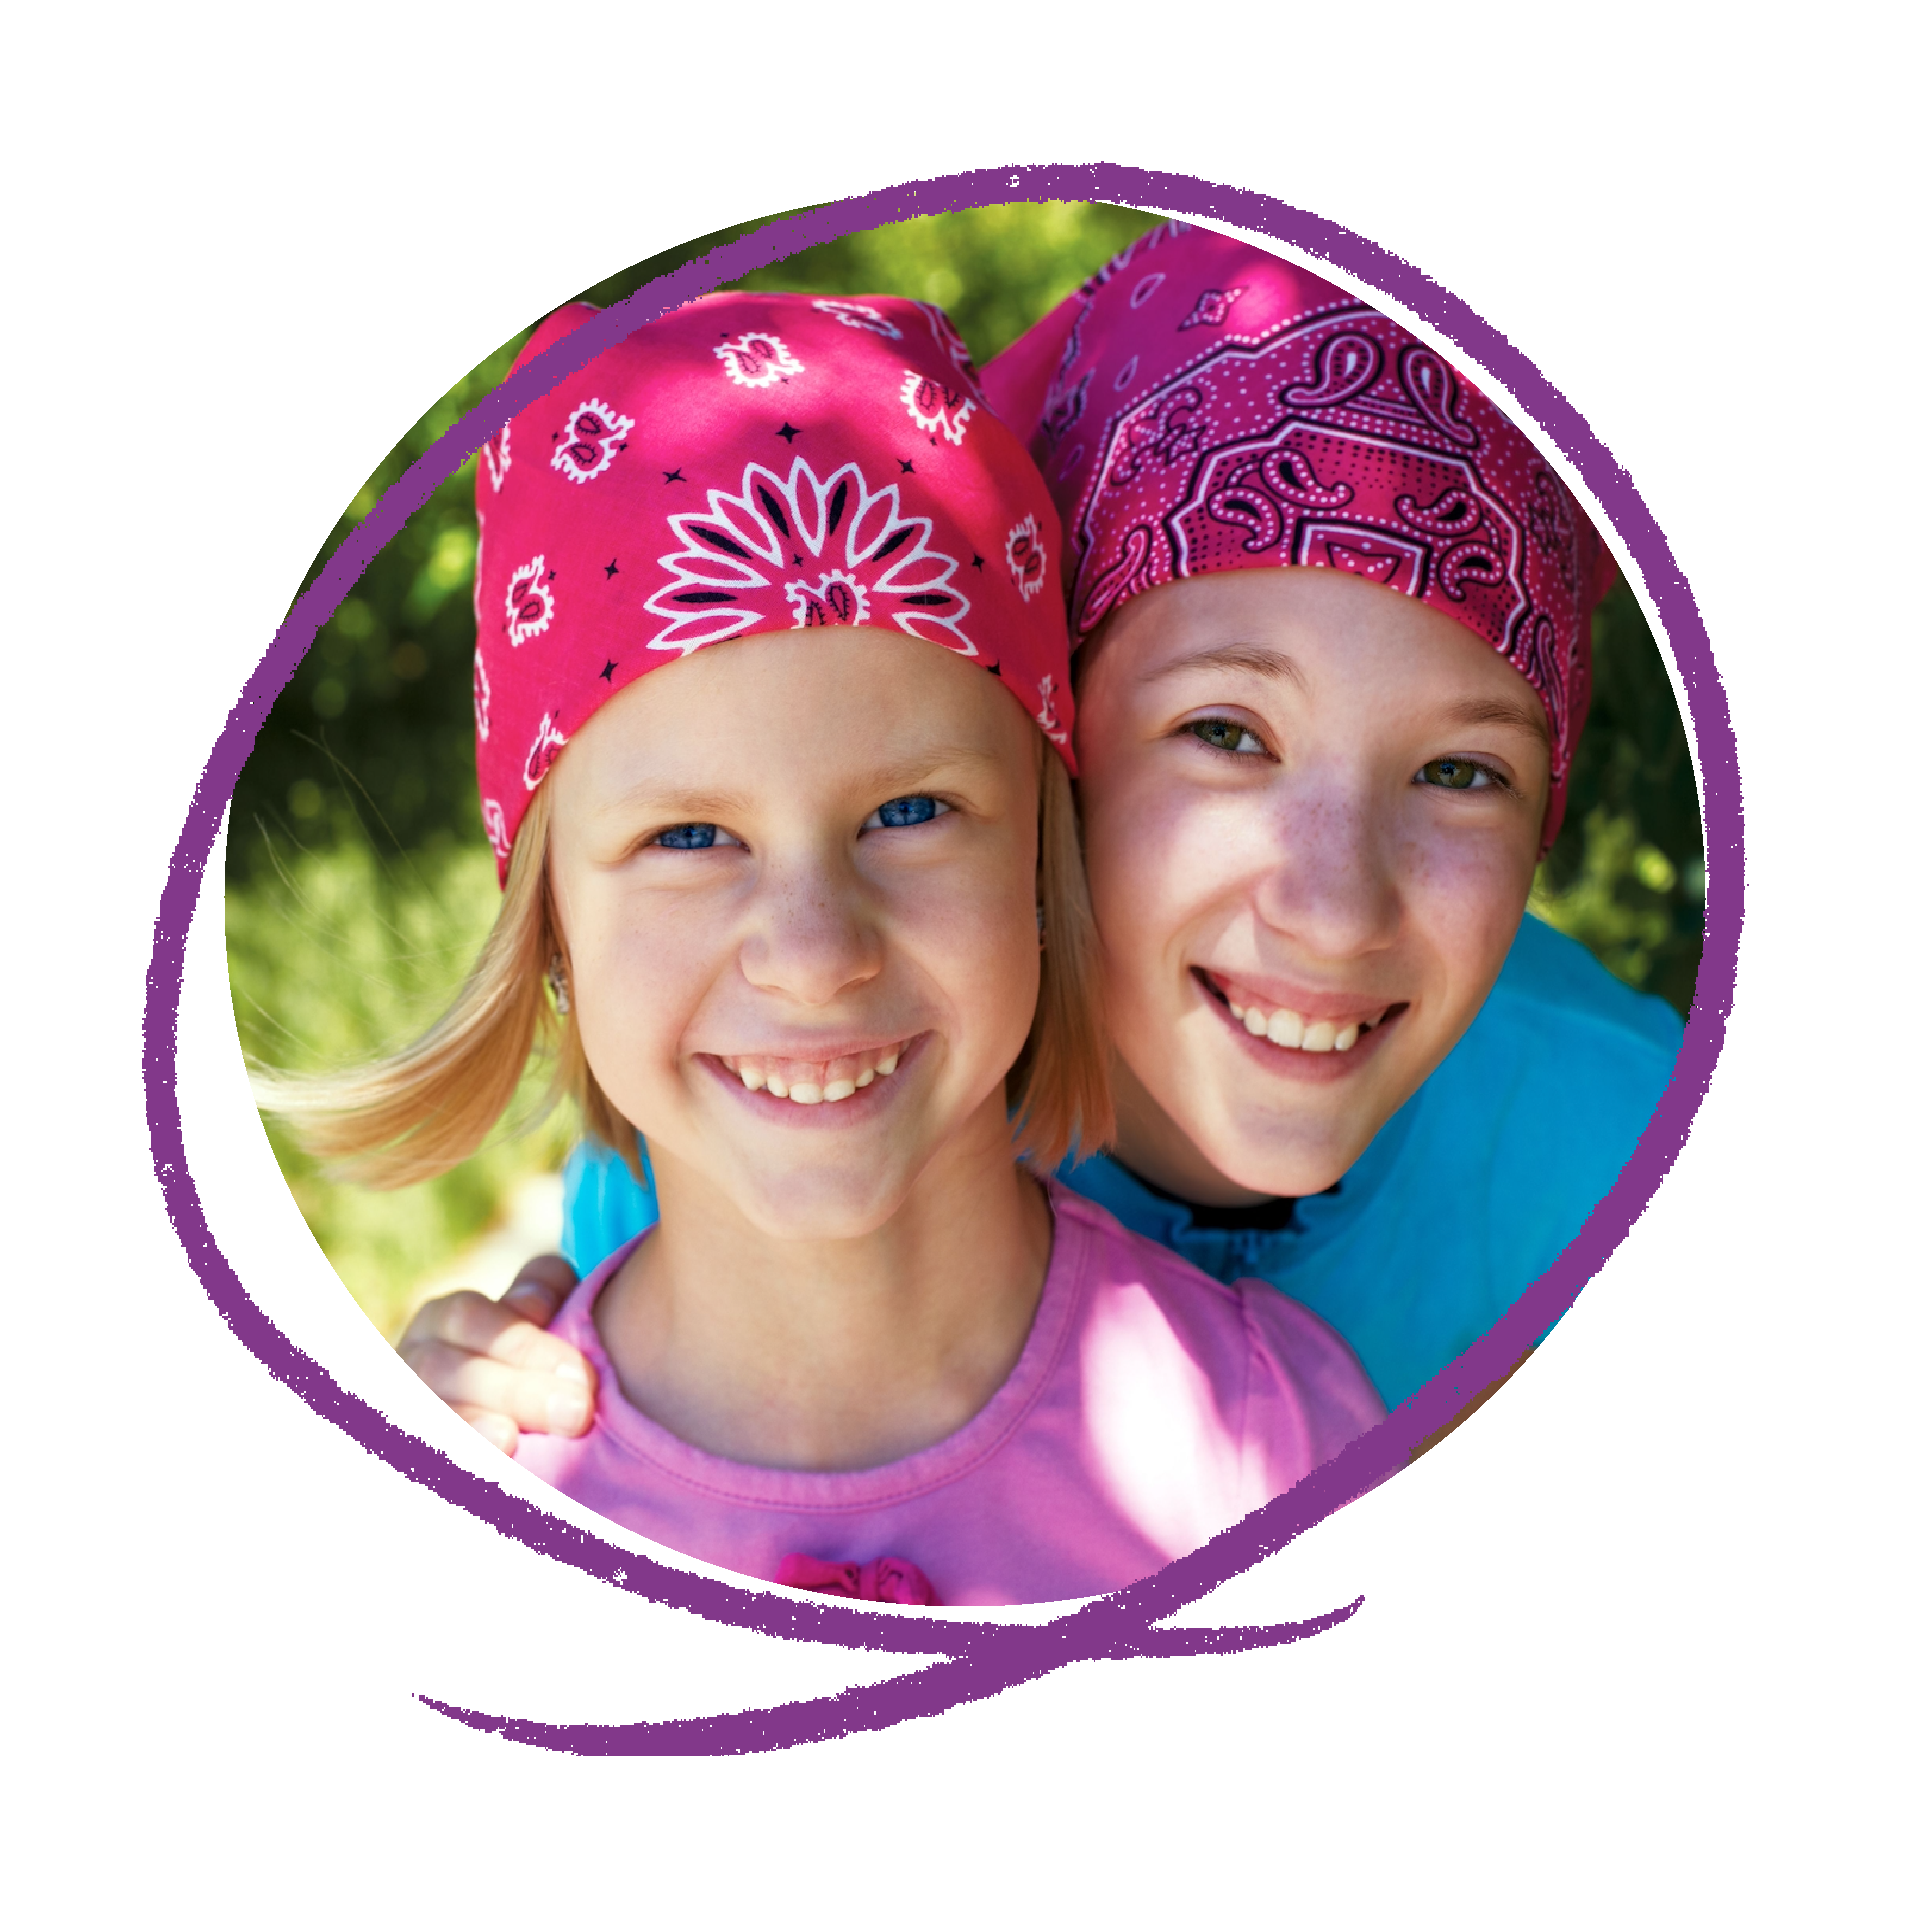 Photo of two young girls with pink bandana's on smiling.